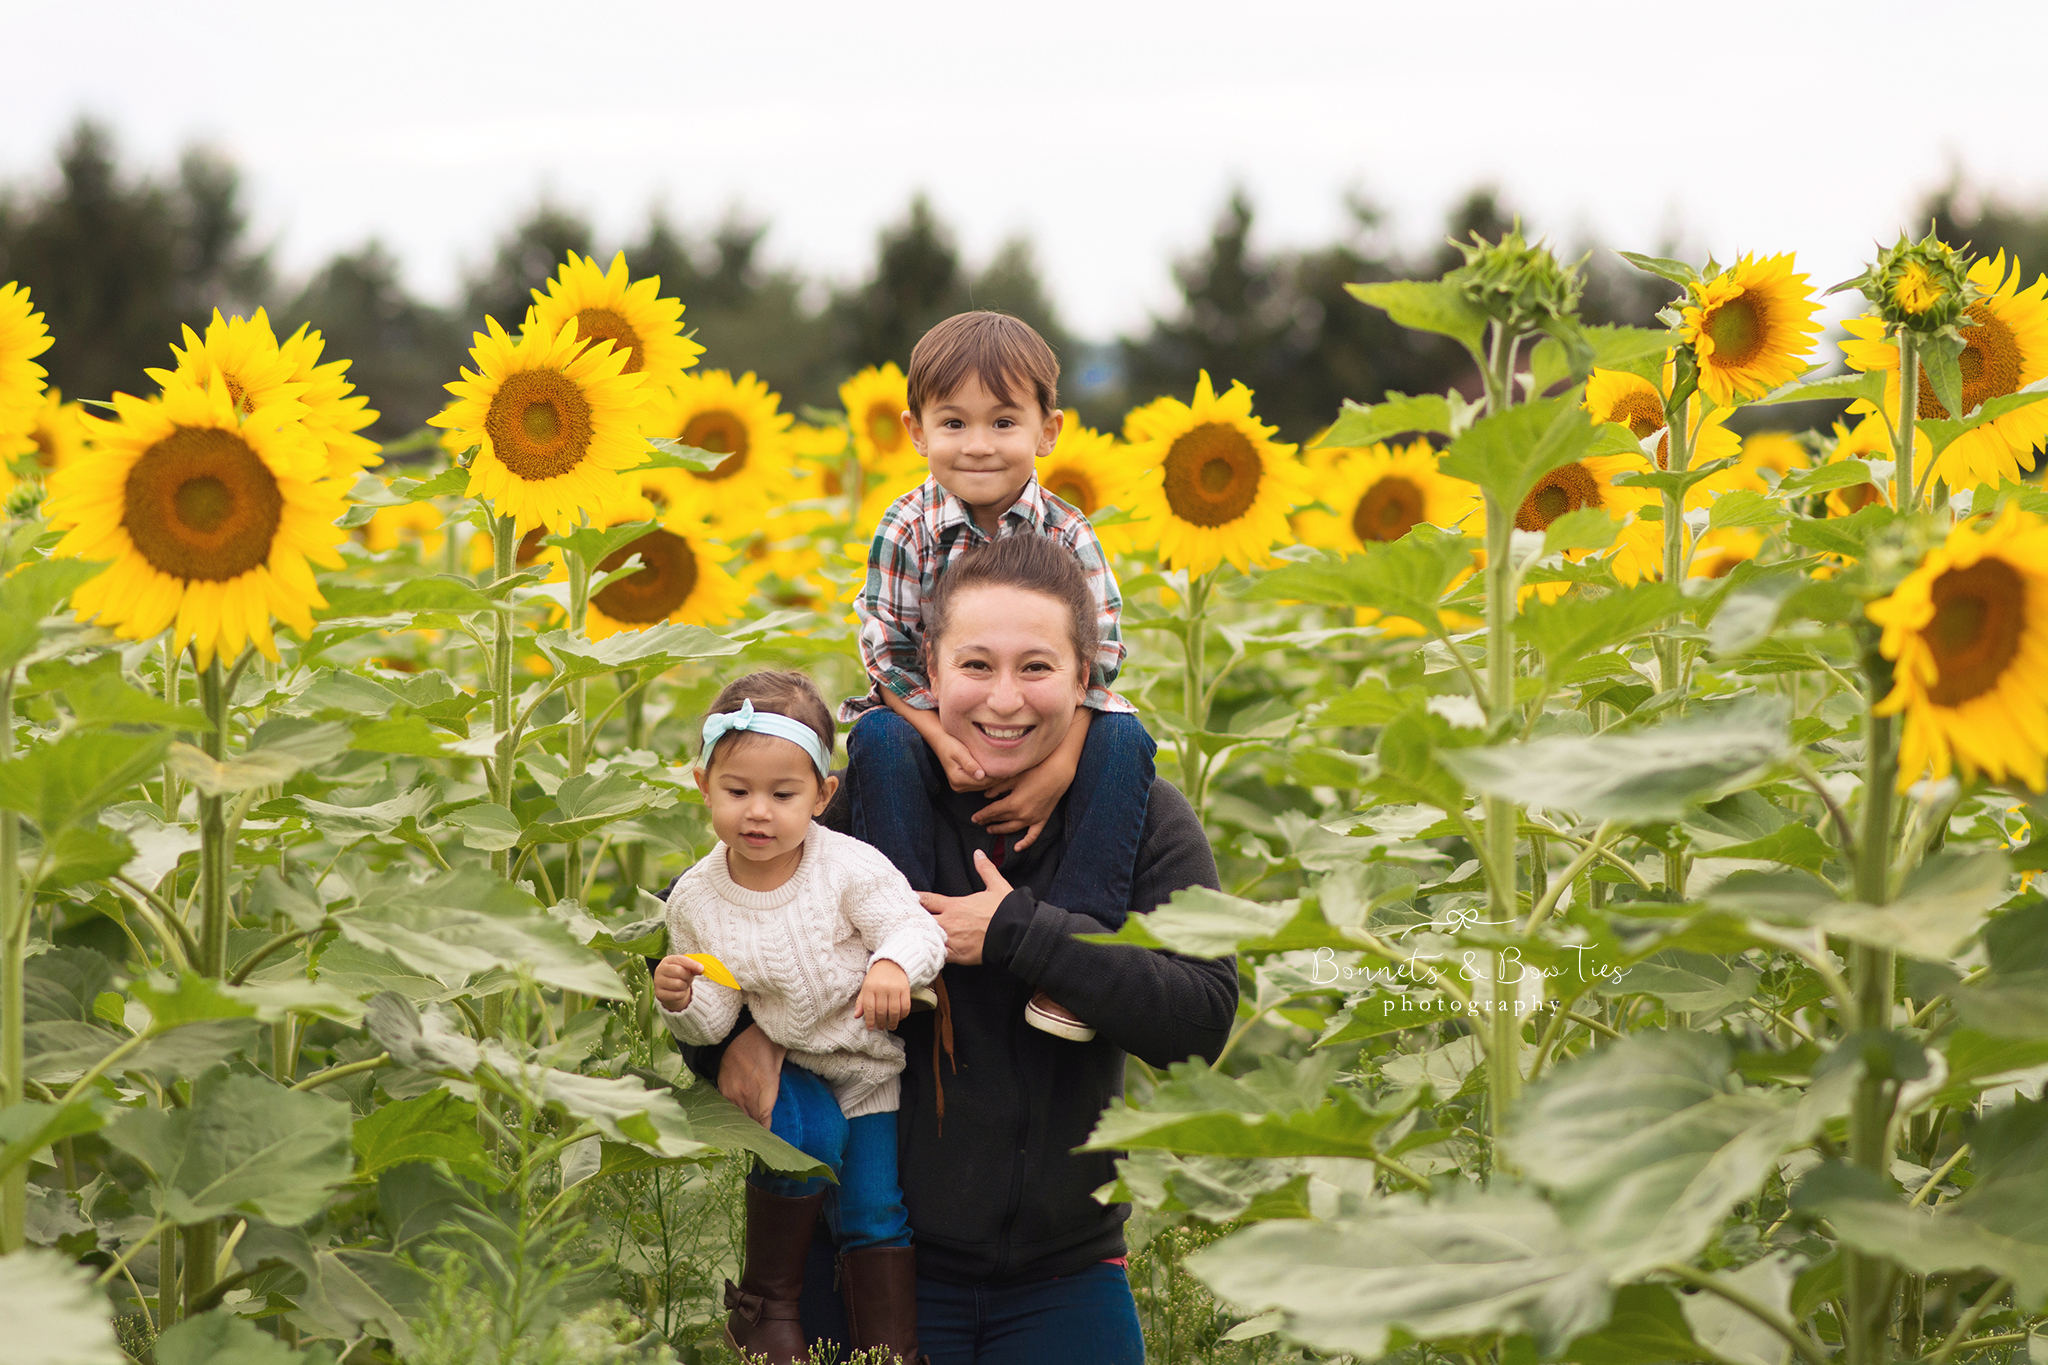 mom and kids in sunflowers.jpg